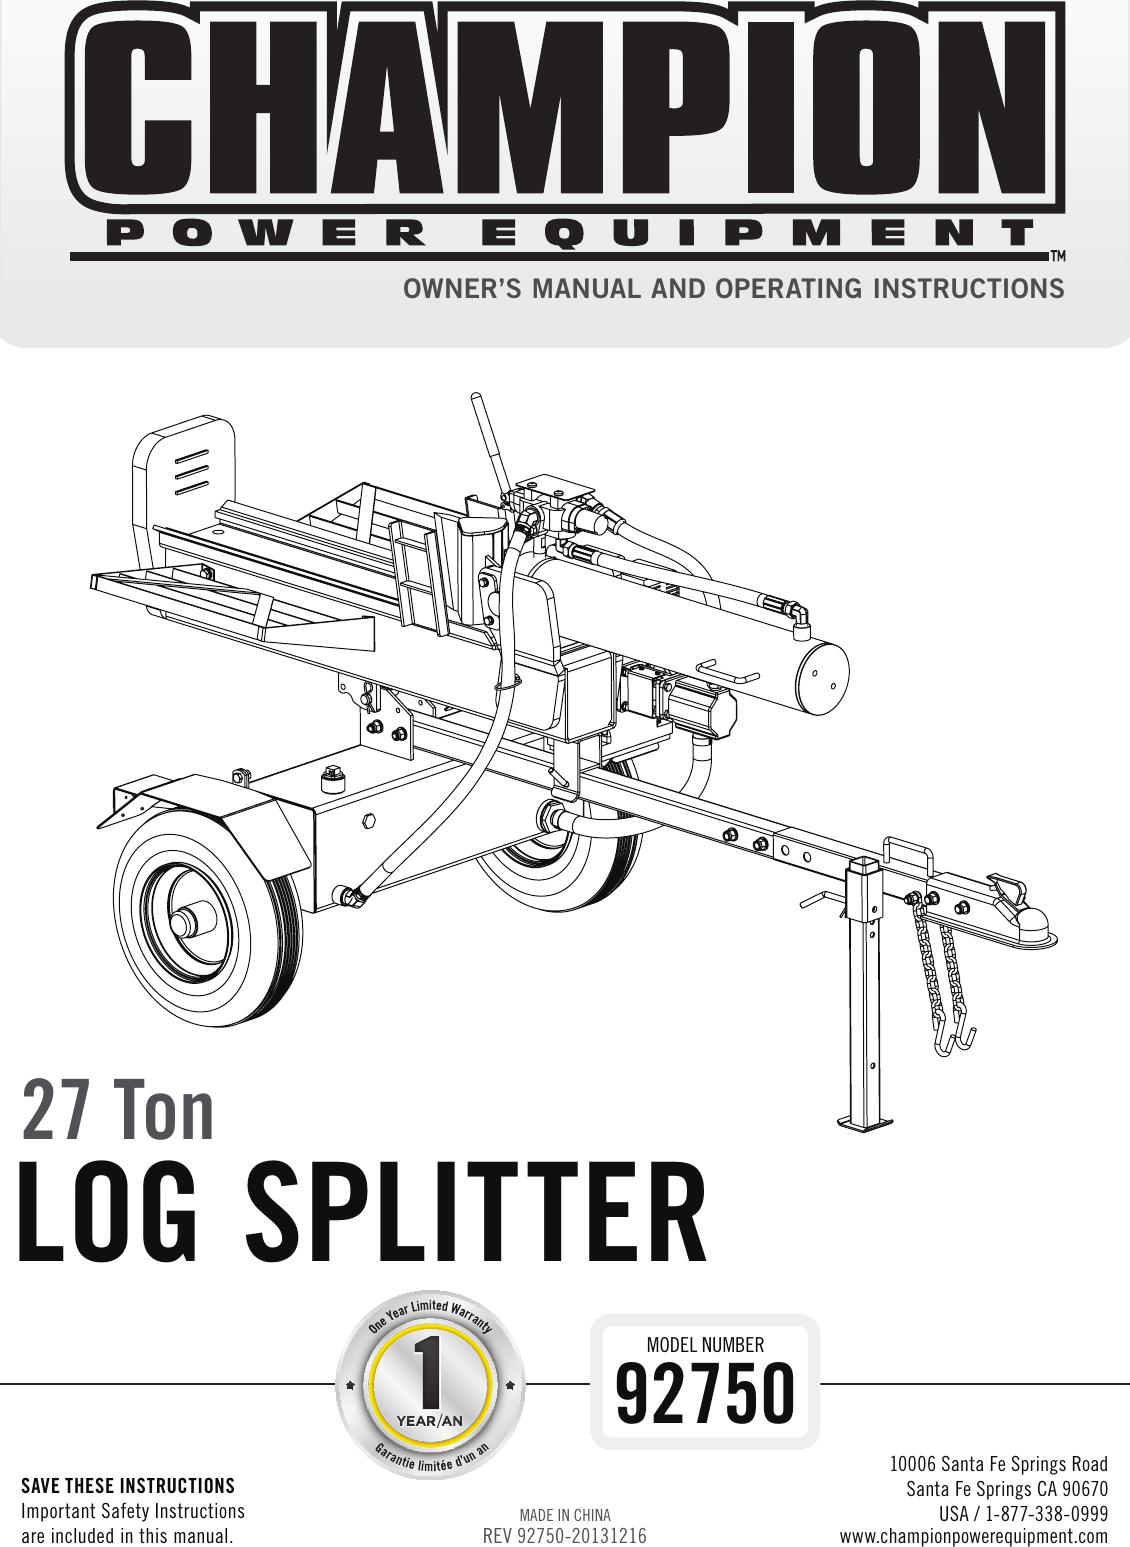 instructions for operating a power tool